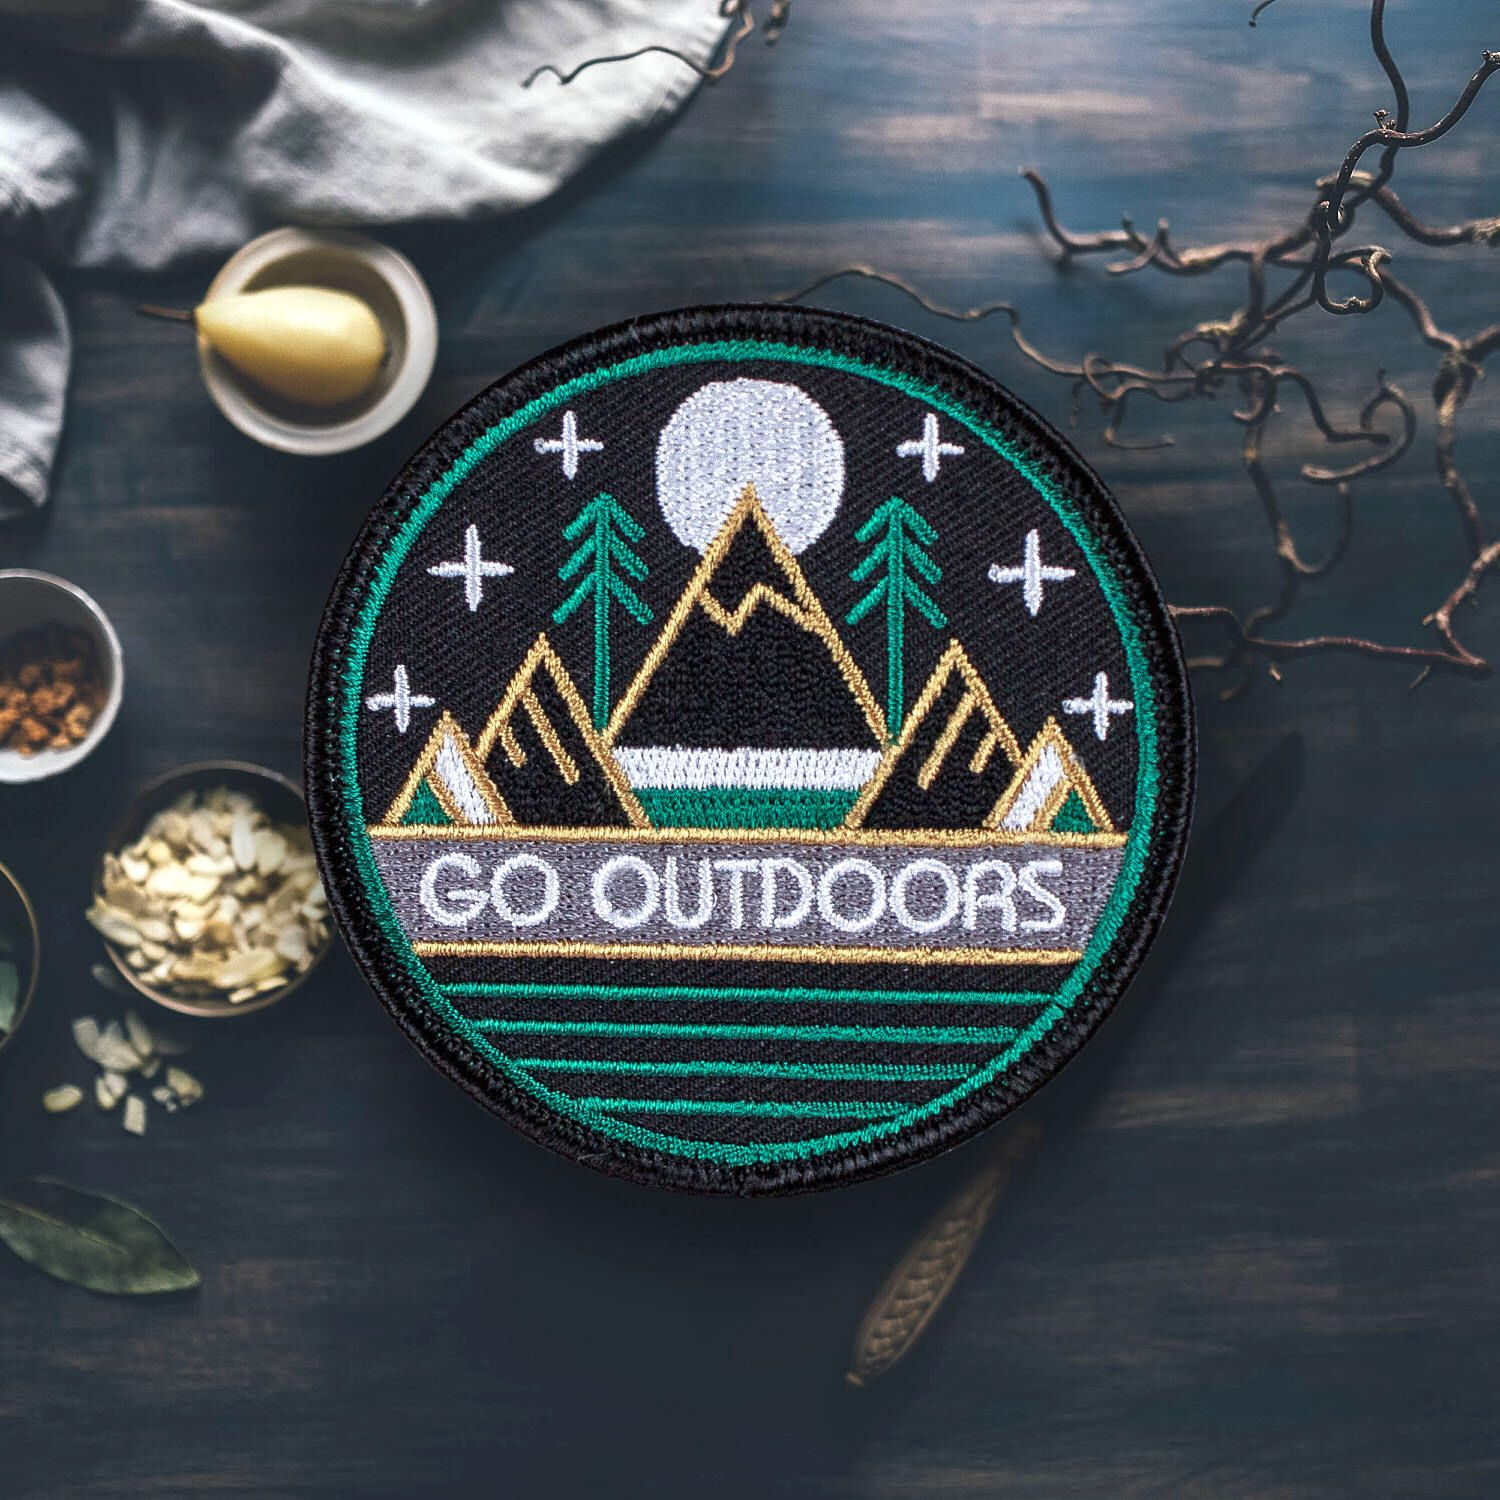 Go Outdoors Hiking Patch | Embroidered | Patches for Jackets